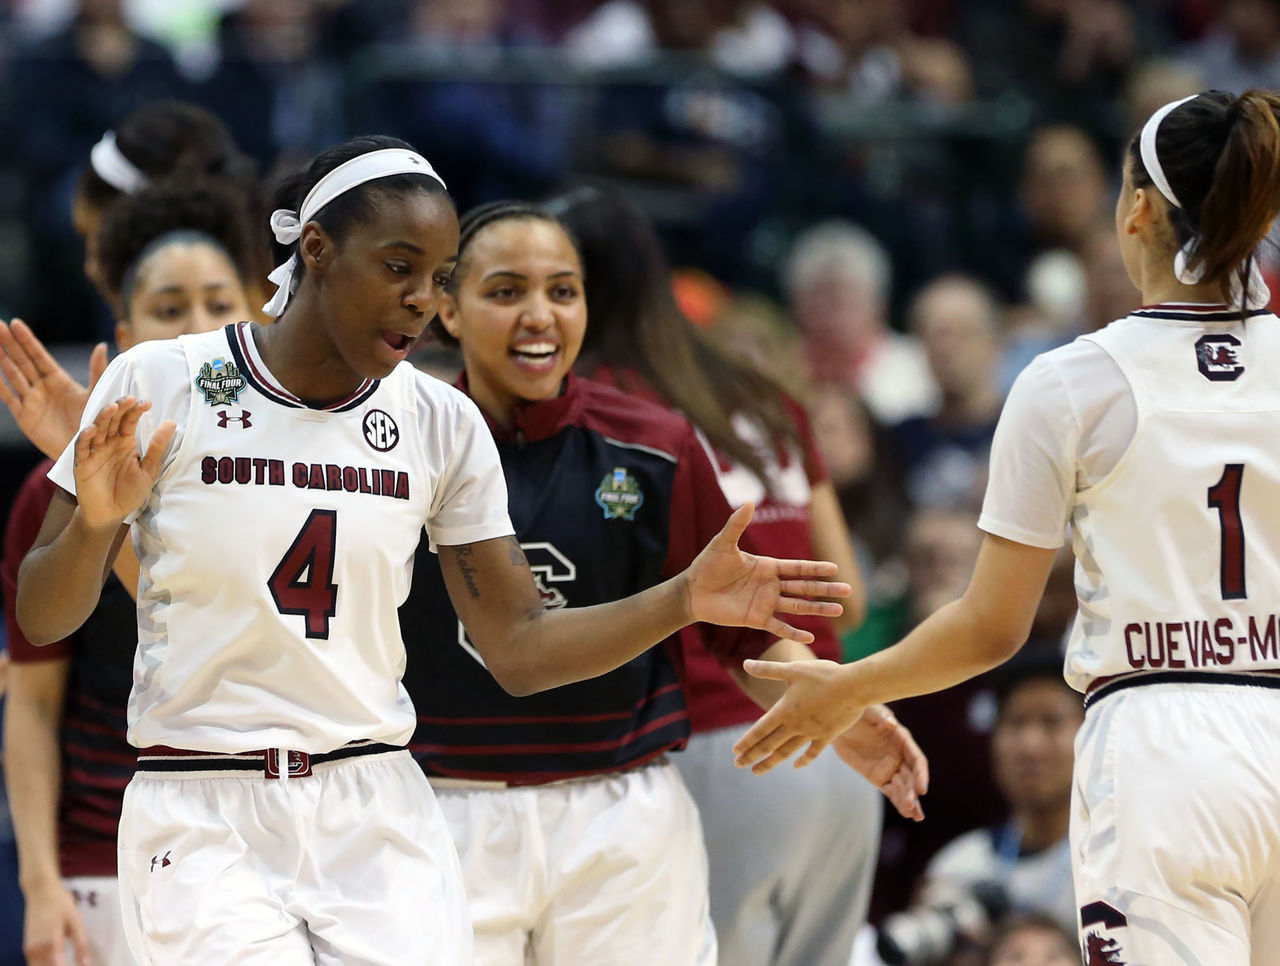 Cropped_2017-04-02t231220z_508519038_nocid_rtrmadp_3_ncaa-womens-basketball-women-s-final-four-mississippi-state-vs-south-carolina